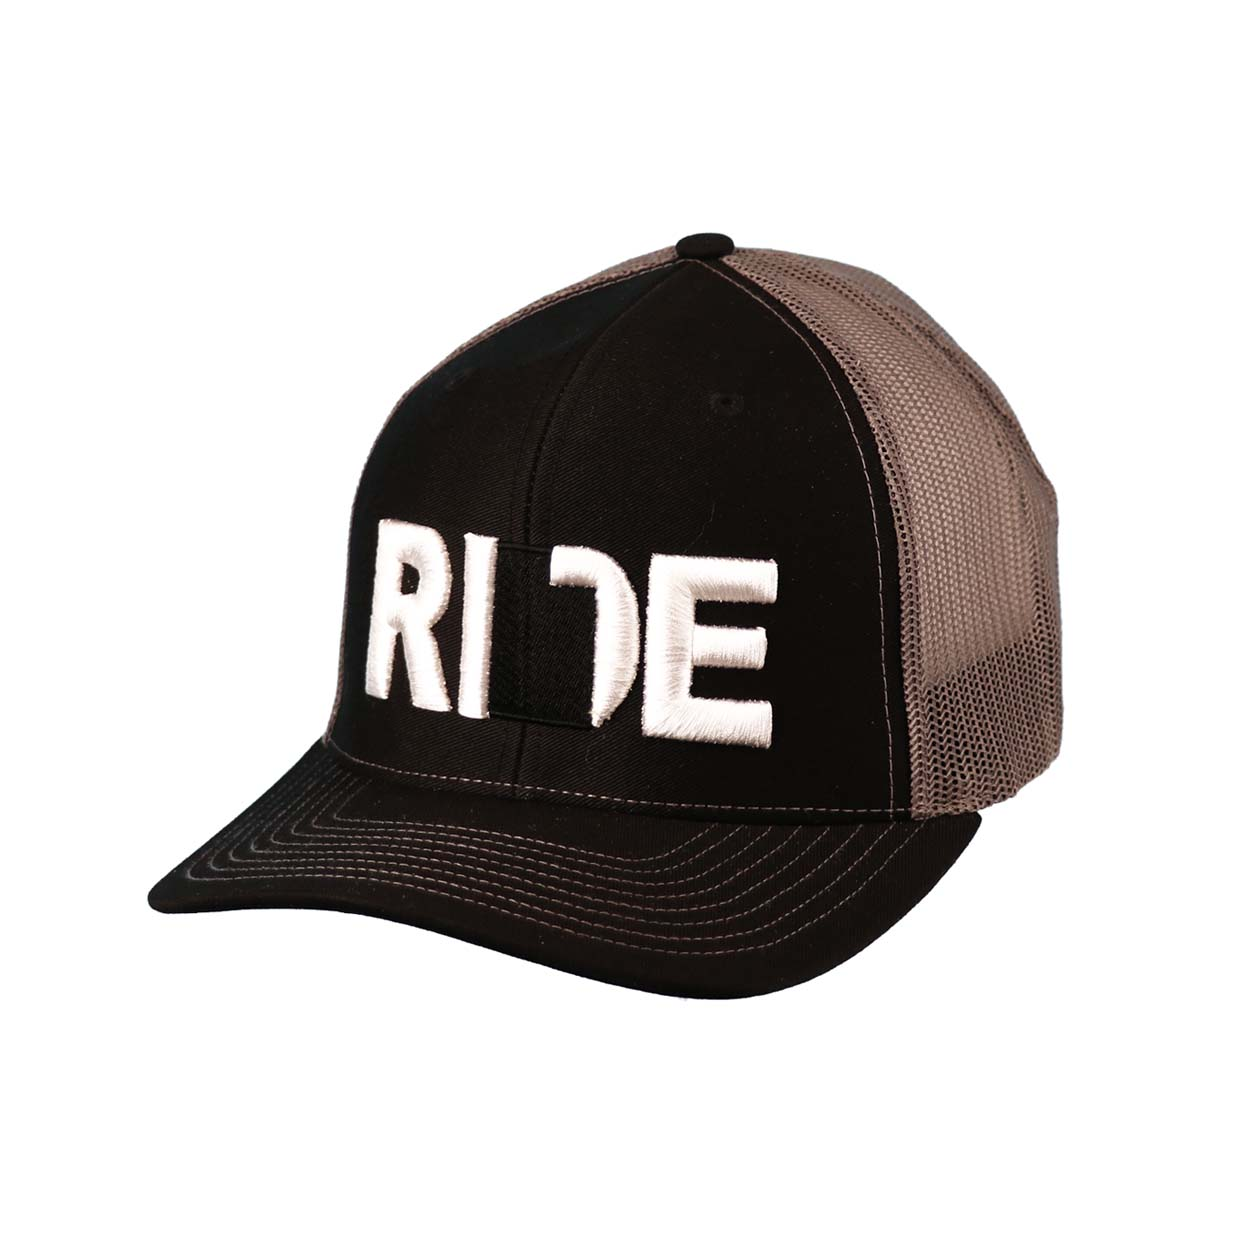 Ride Utah Classic Embroidered Snapback Trucker Hat Black/White